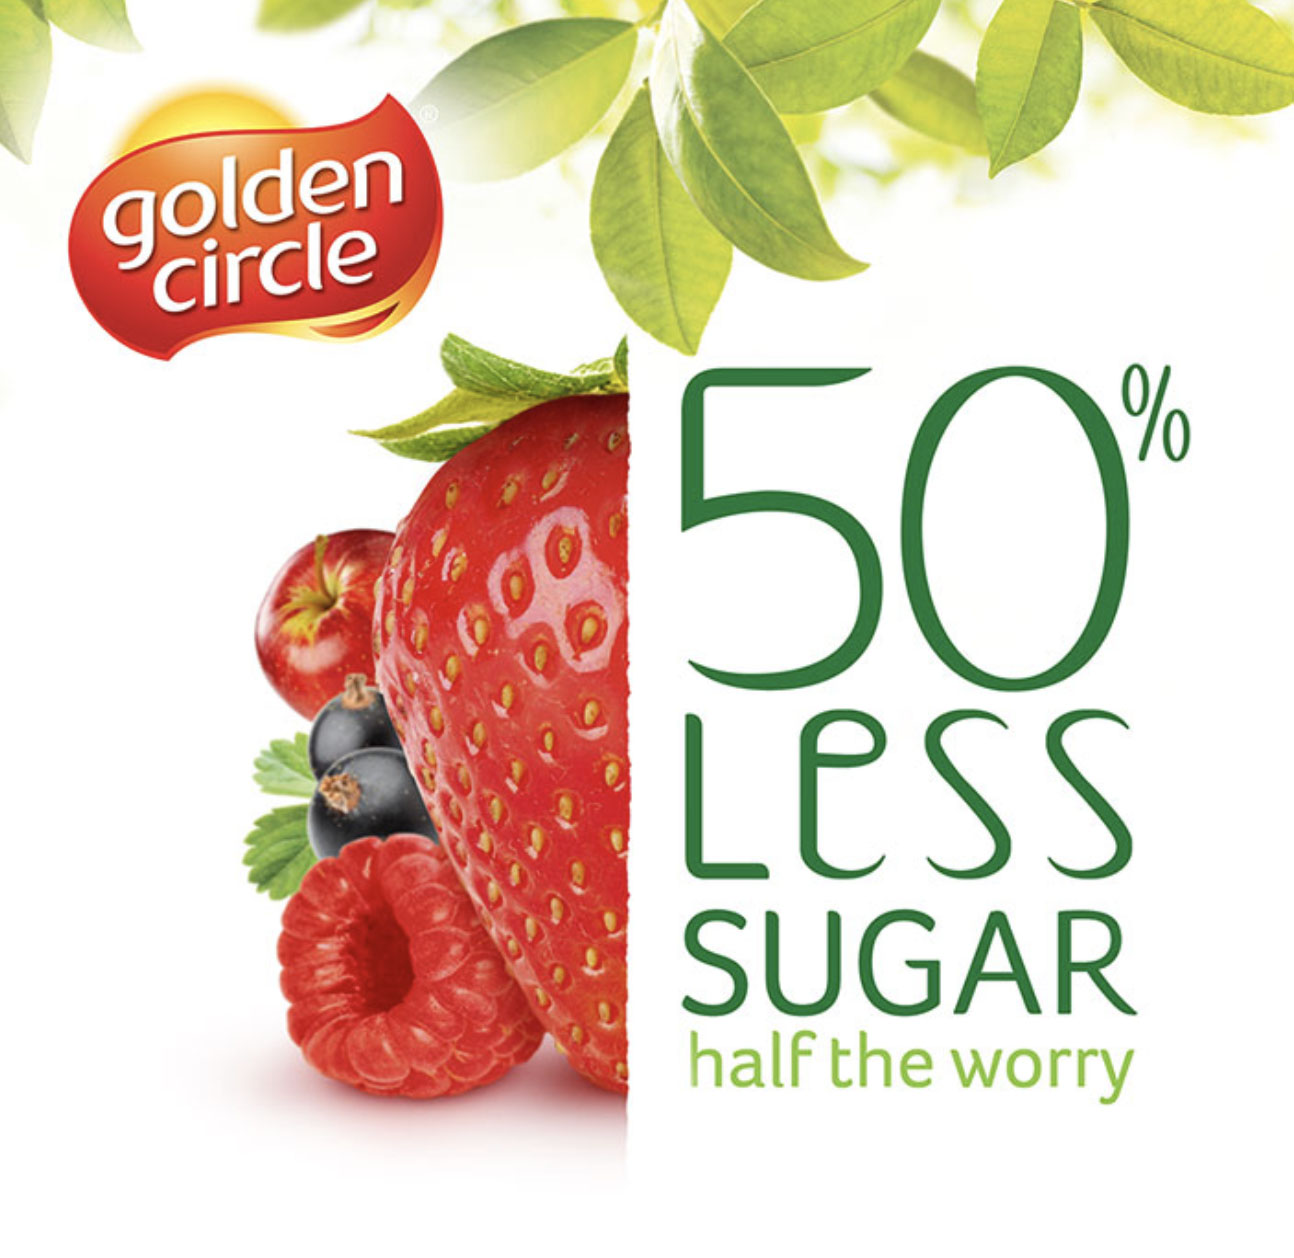 Golden Circle Less Sugar Juice FMCG Packaging Food styling